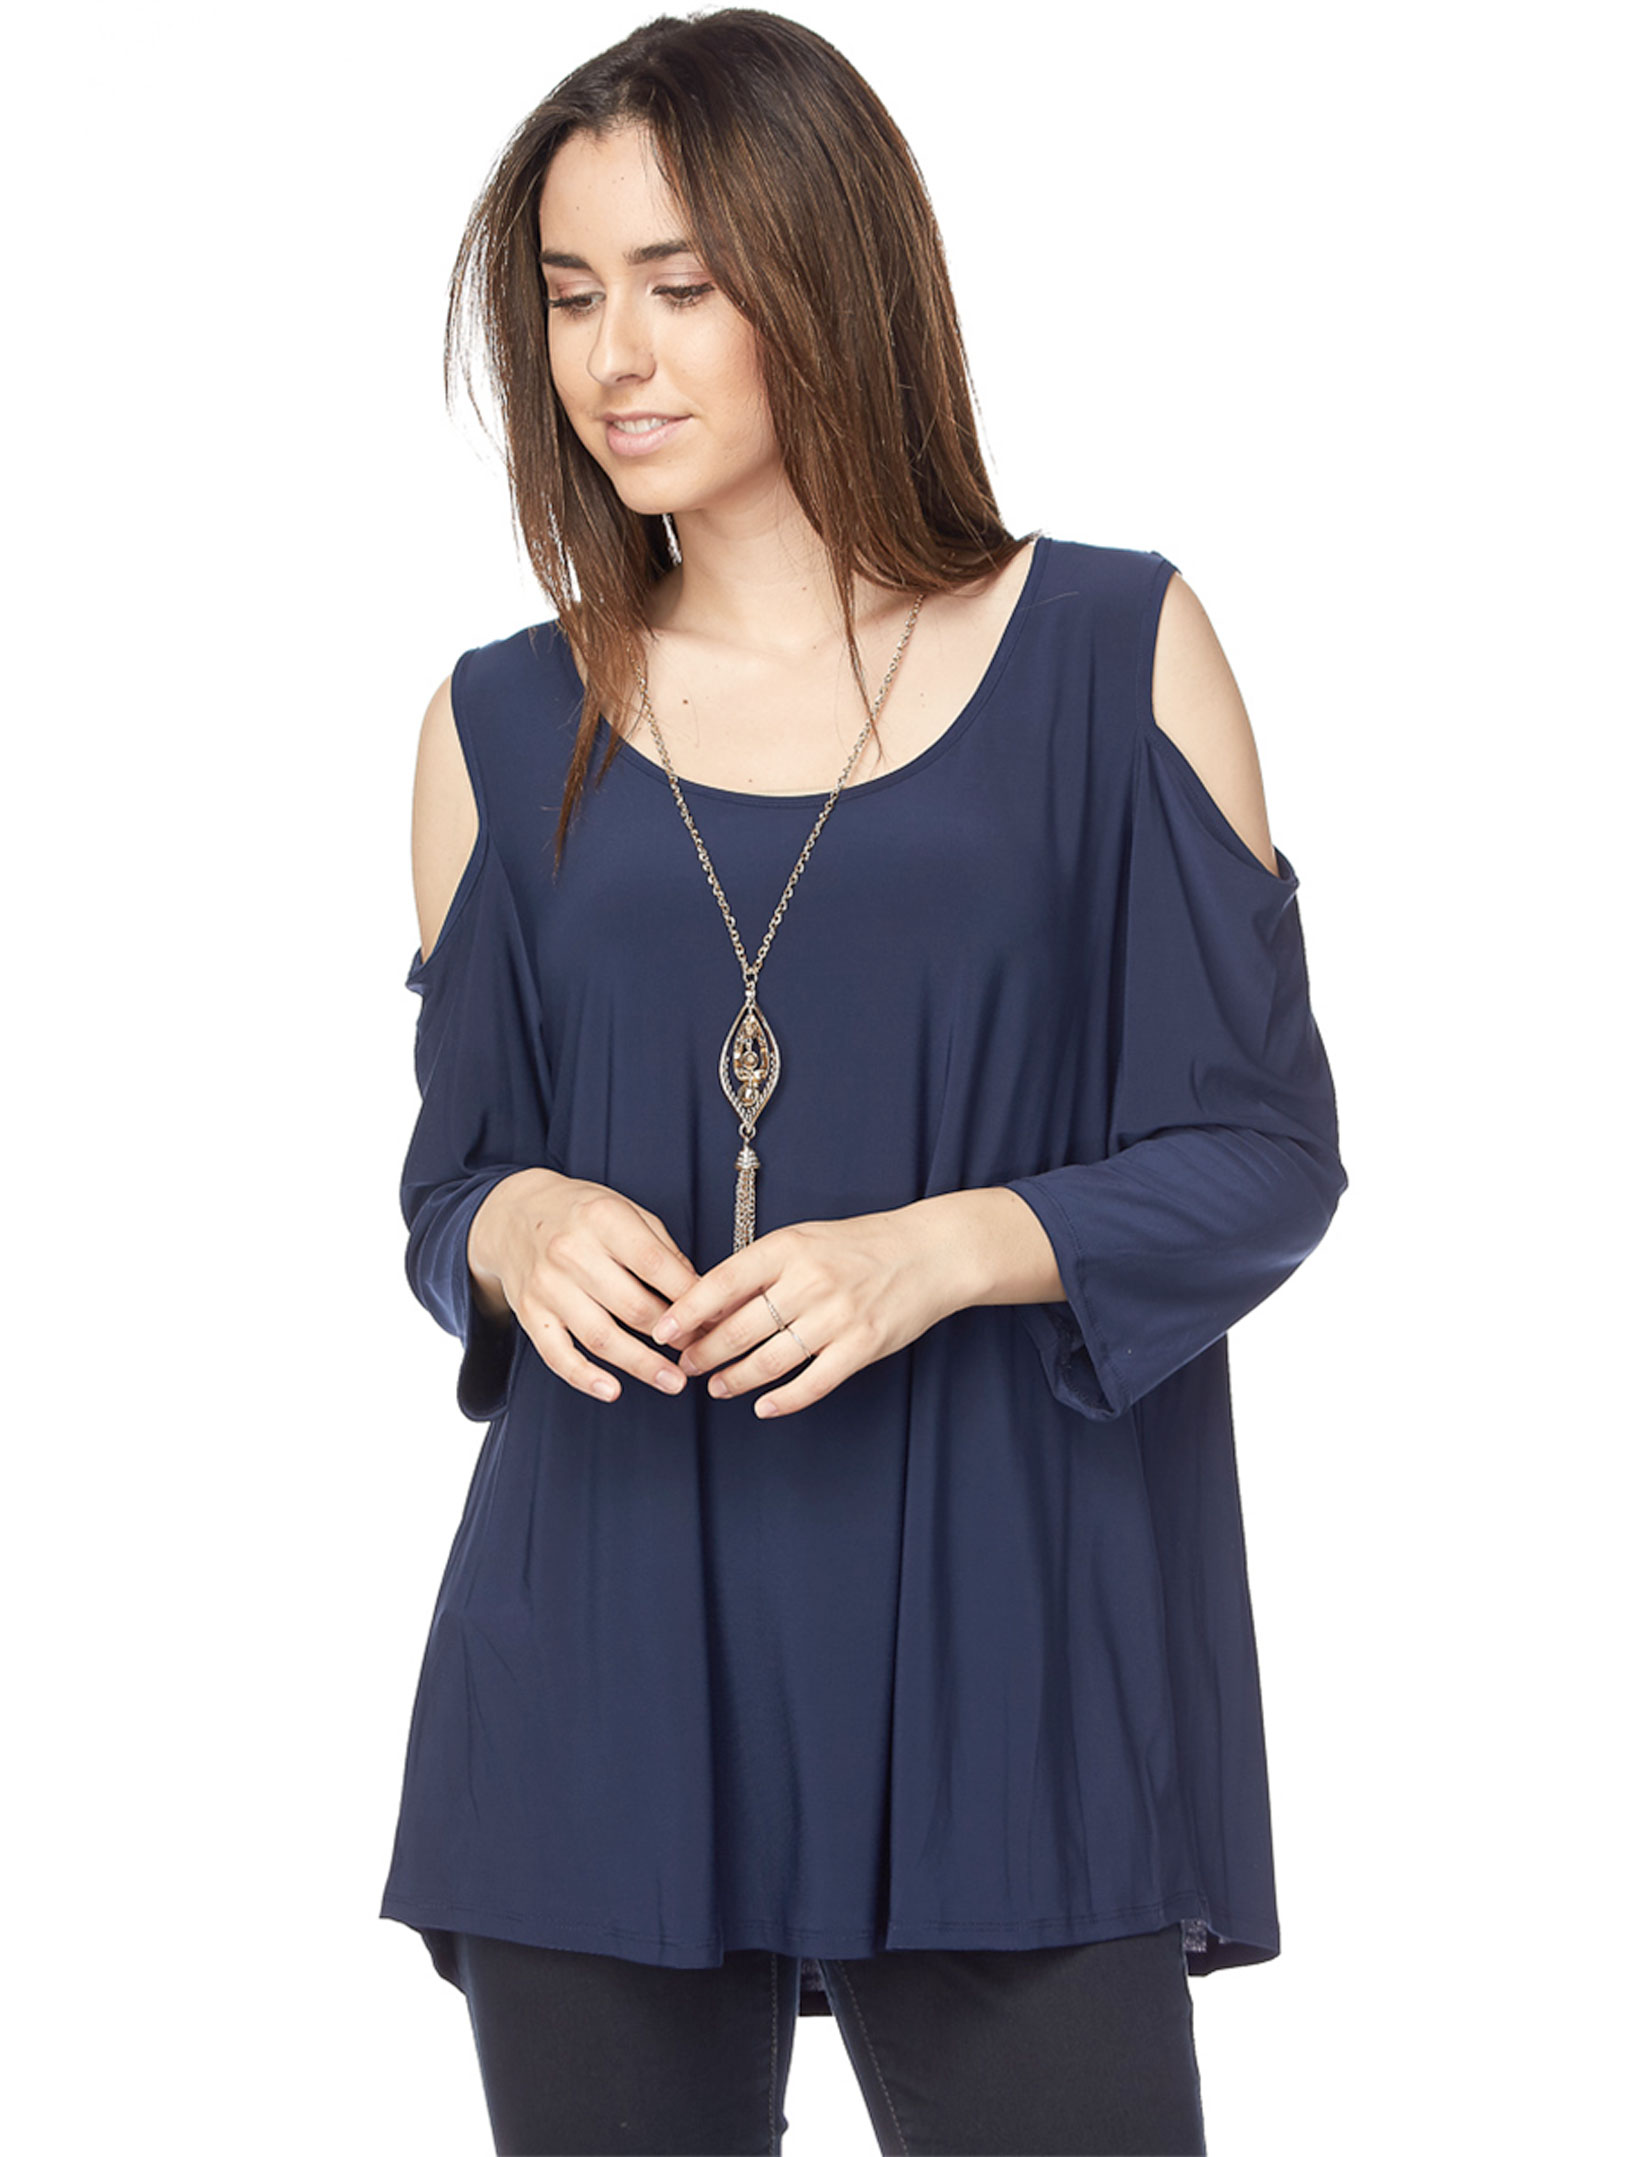 Tunics - 3/4 Sleeve Cold Shoulder & Necklace 1637I